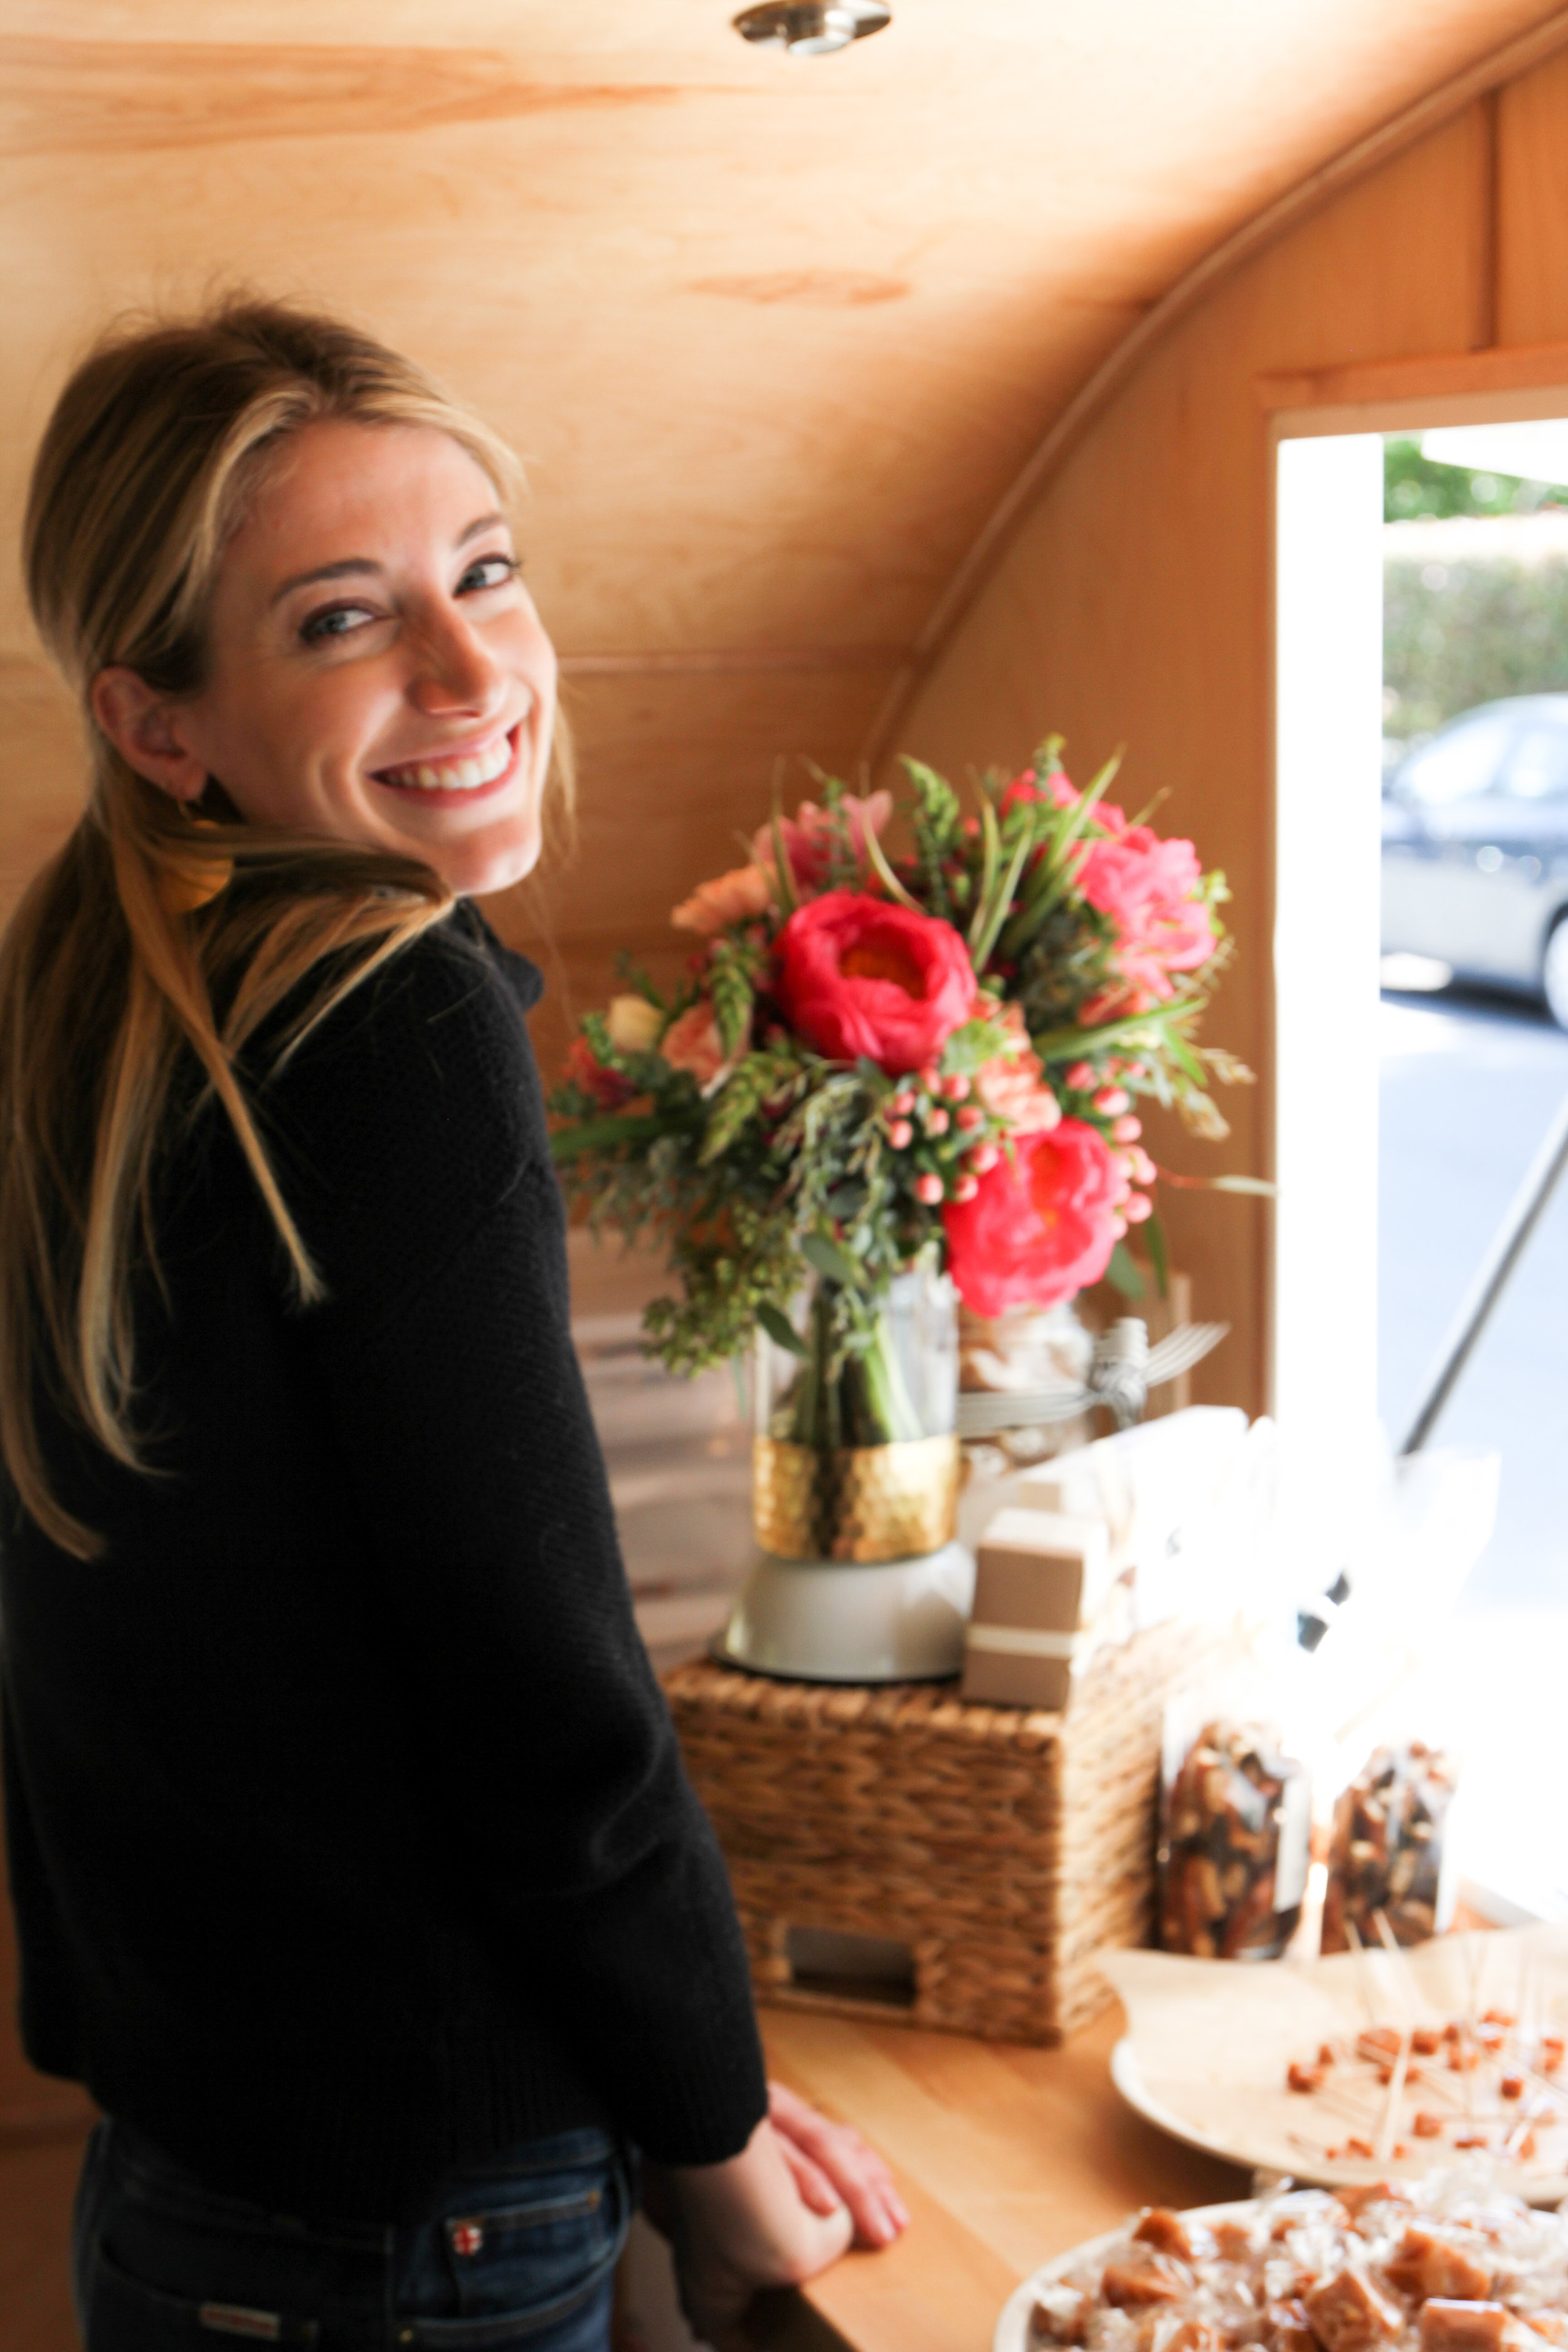 courtney and farmgirl flowers in trailer